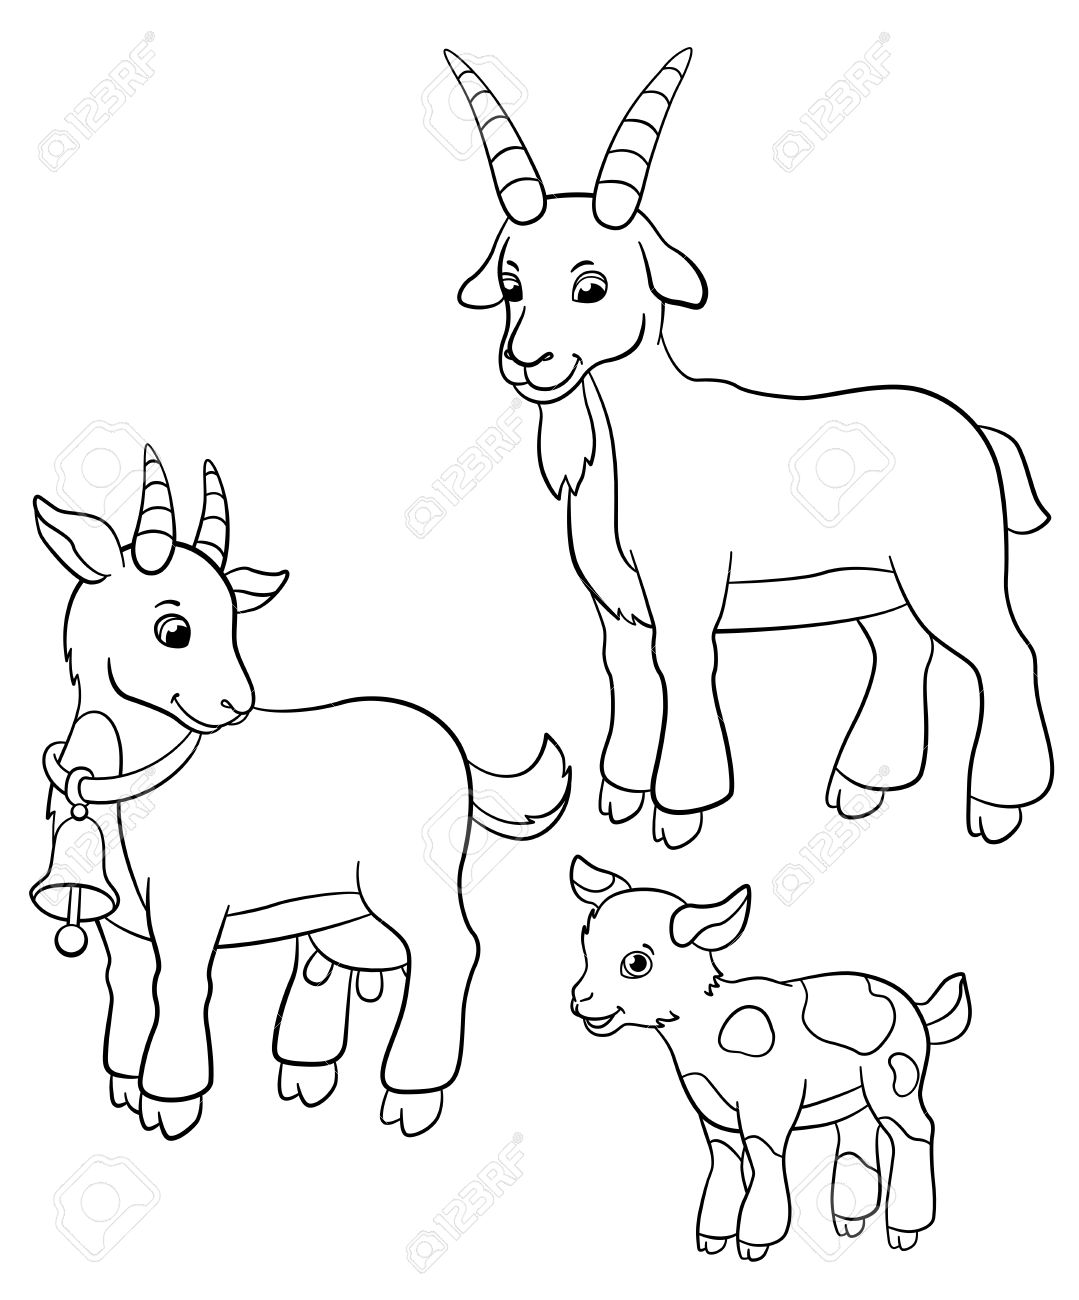 Coloring Pages. Farm Animals. Goat Family Stands And Smiles. Royalty ...